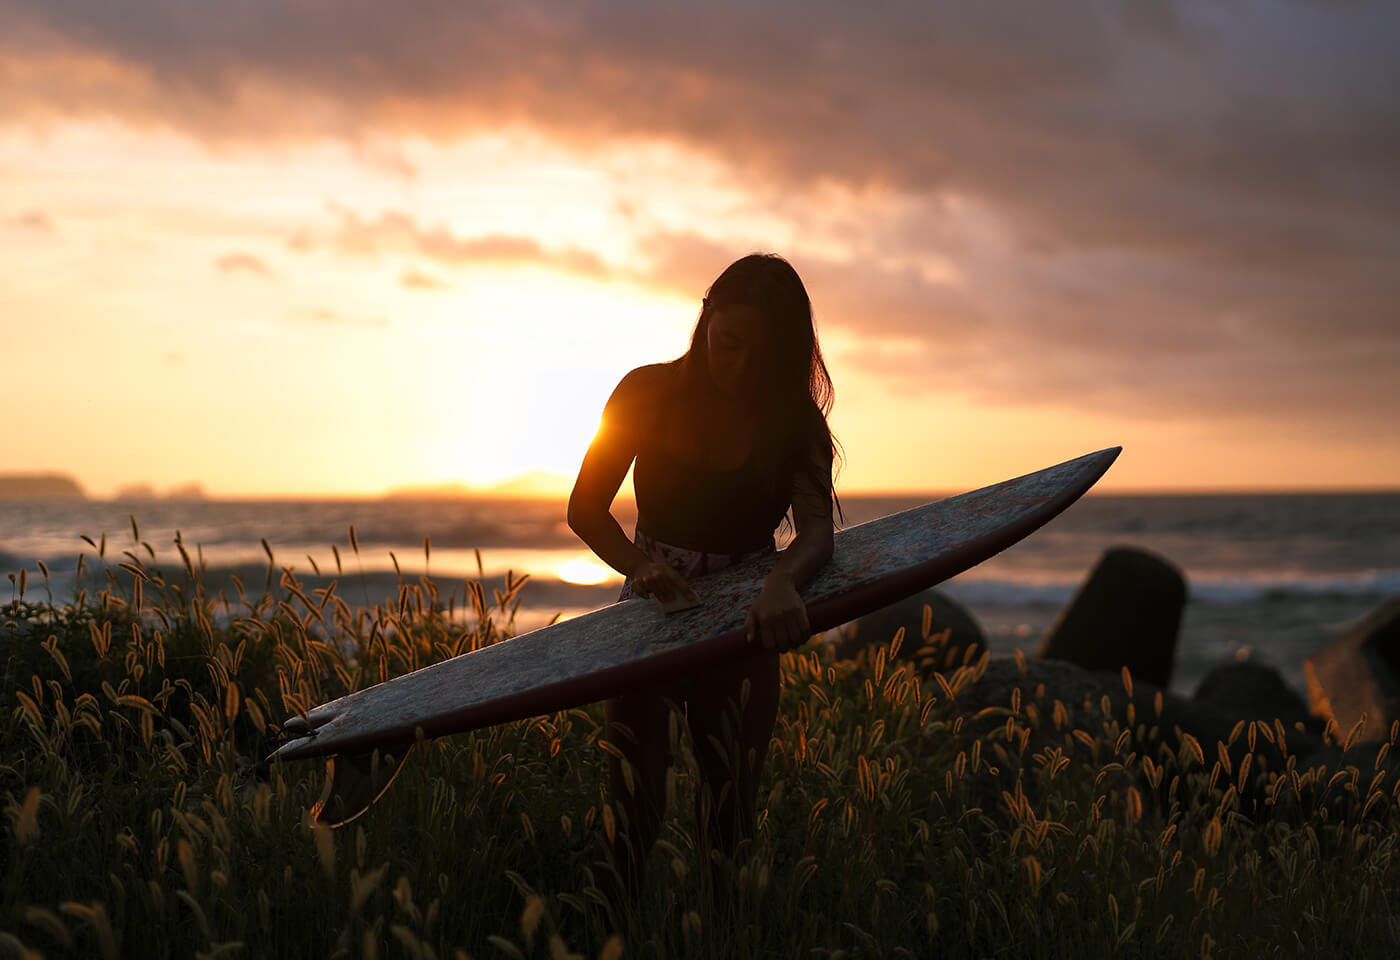 Photograph of girl with surfboard at sunset using RF 50mm f/1.2 L USM